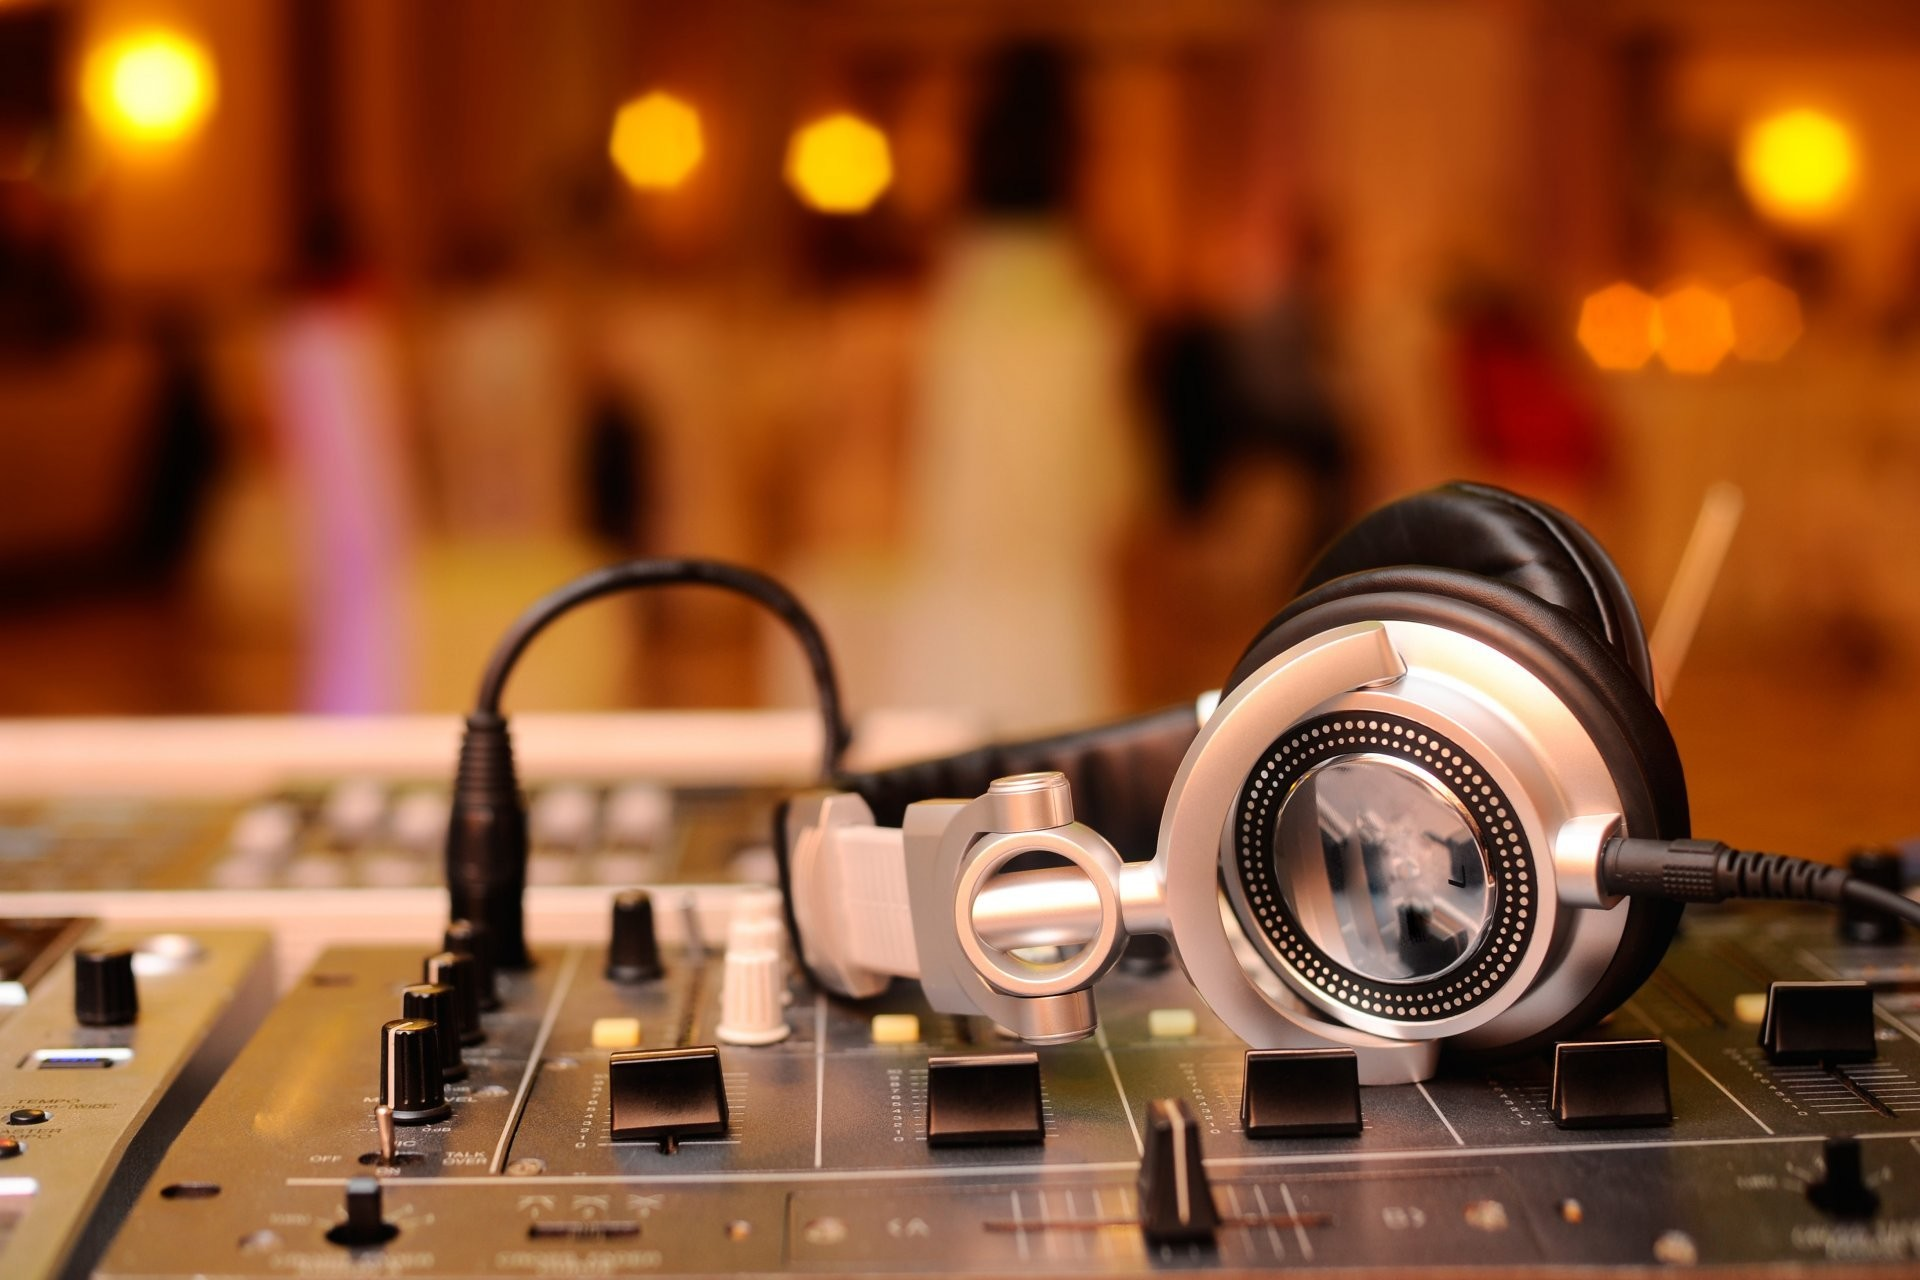 Must see Wallpaper Music Party - 698004-large-amplifier-wallpapers-1920x1280-pictures  Photograph_96381.jpg